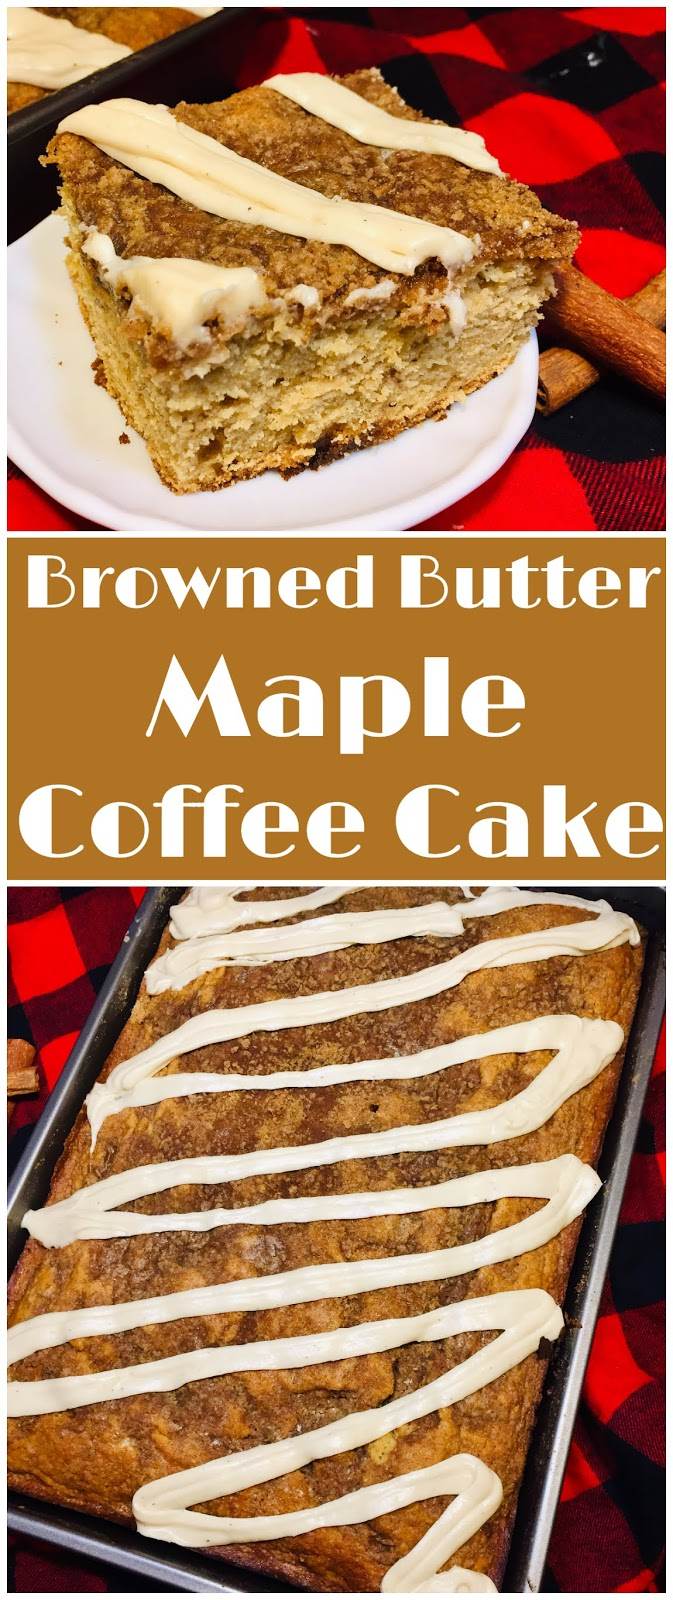 Browned Butter Maple Coffee Cake